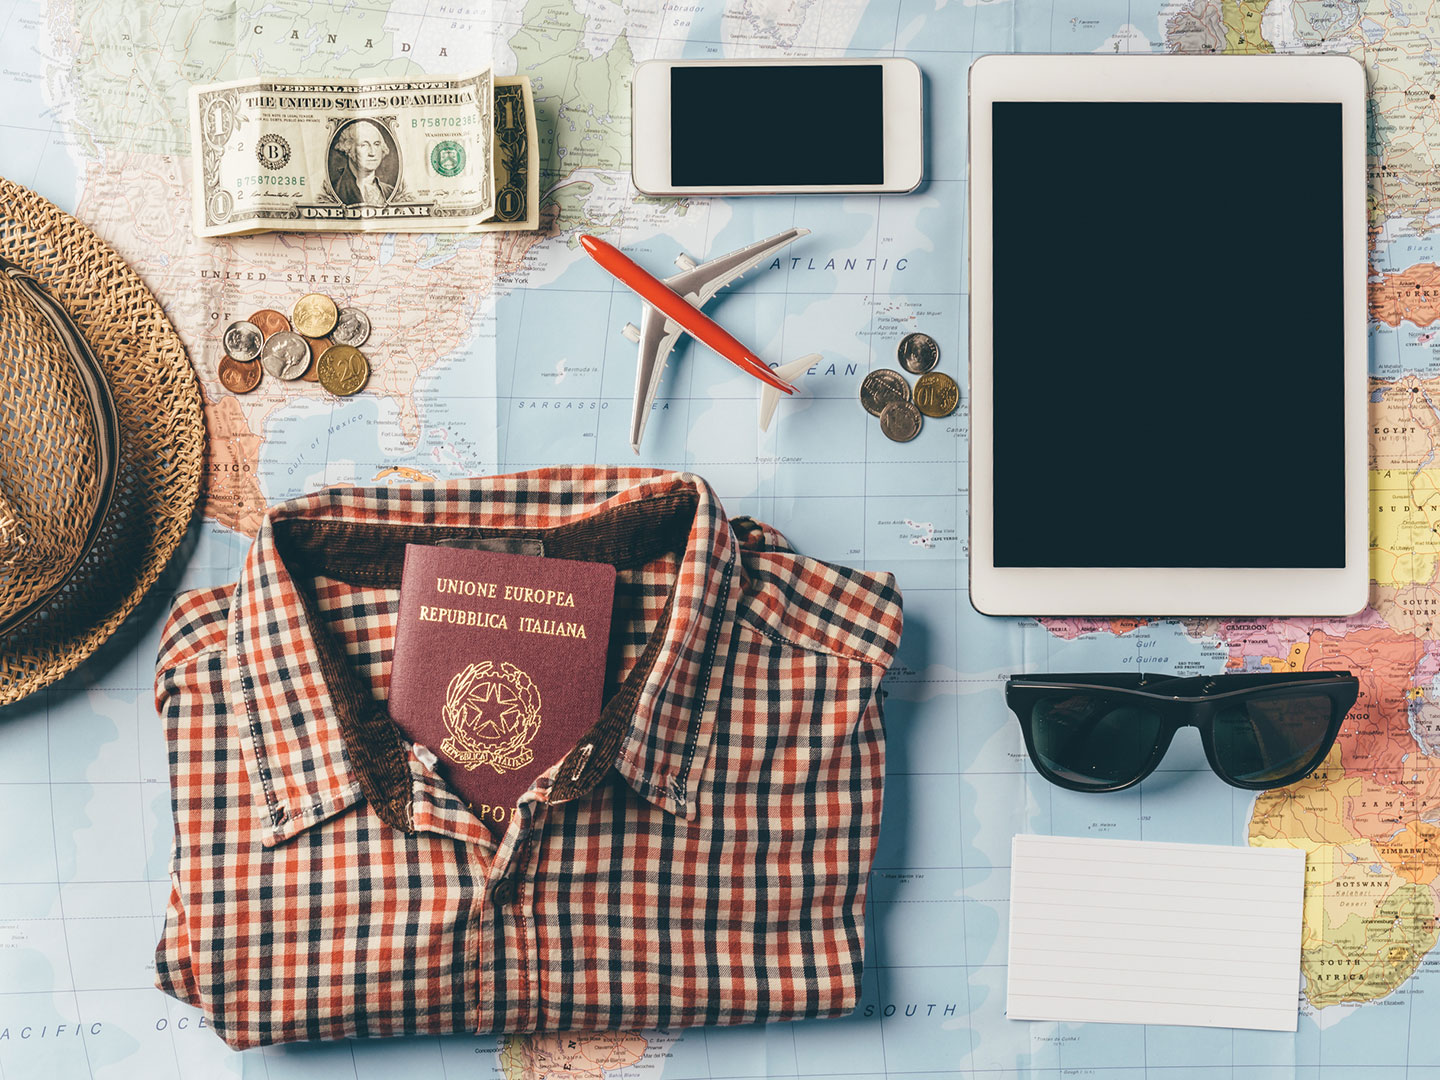 Digital Detox While Traveling? | Technology & Health | Andrew Weil, M.D.